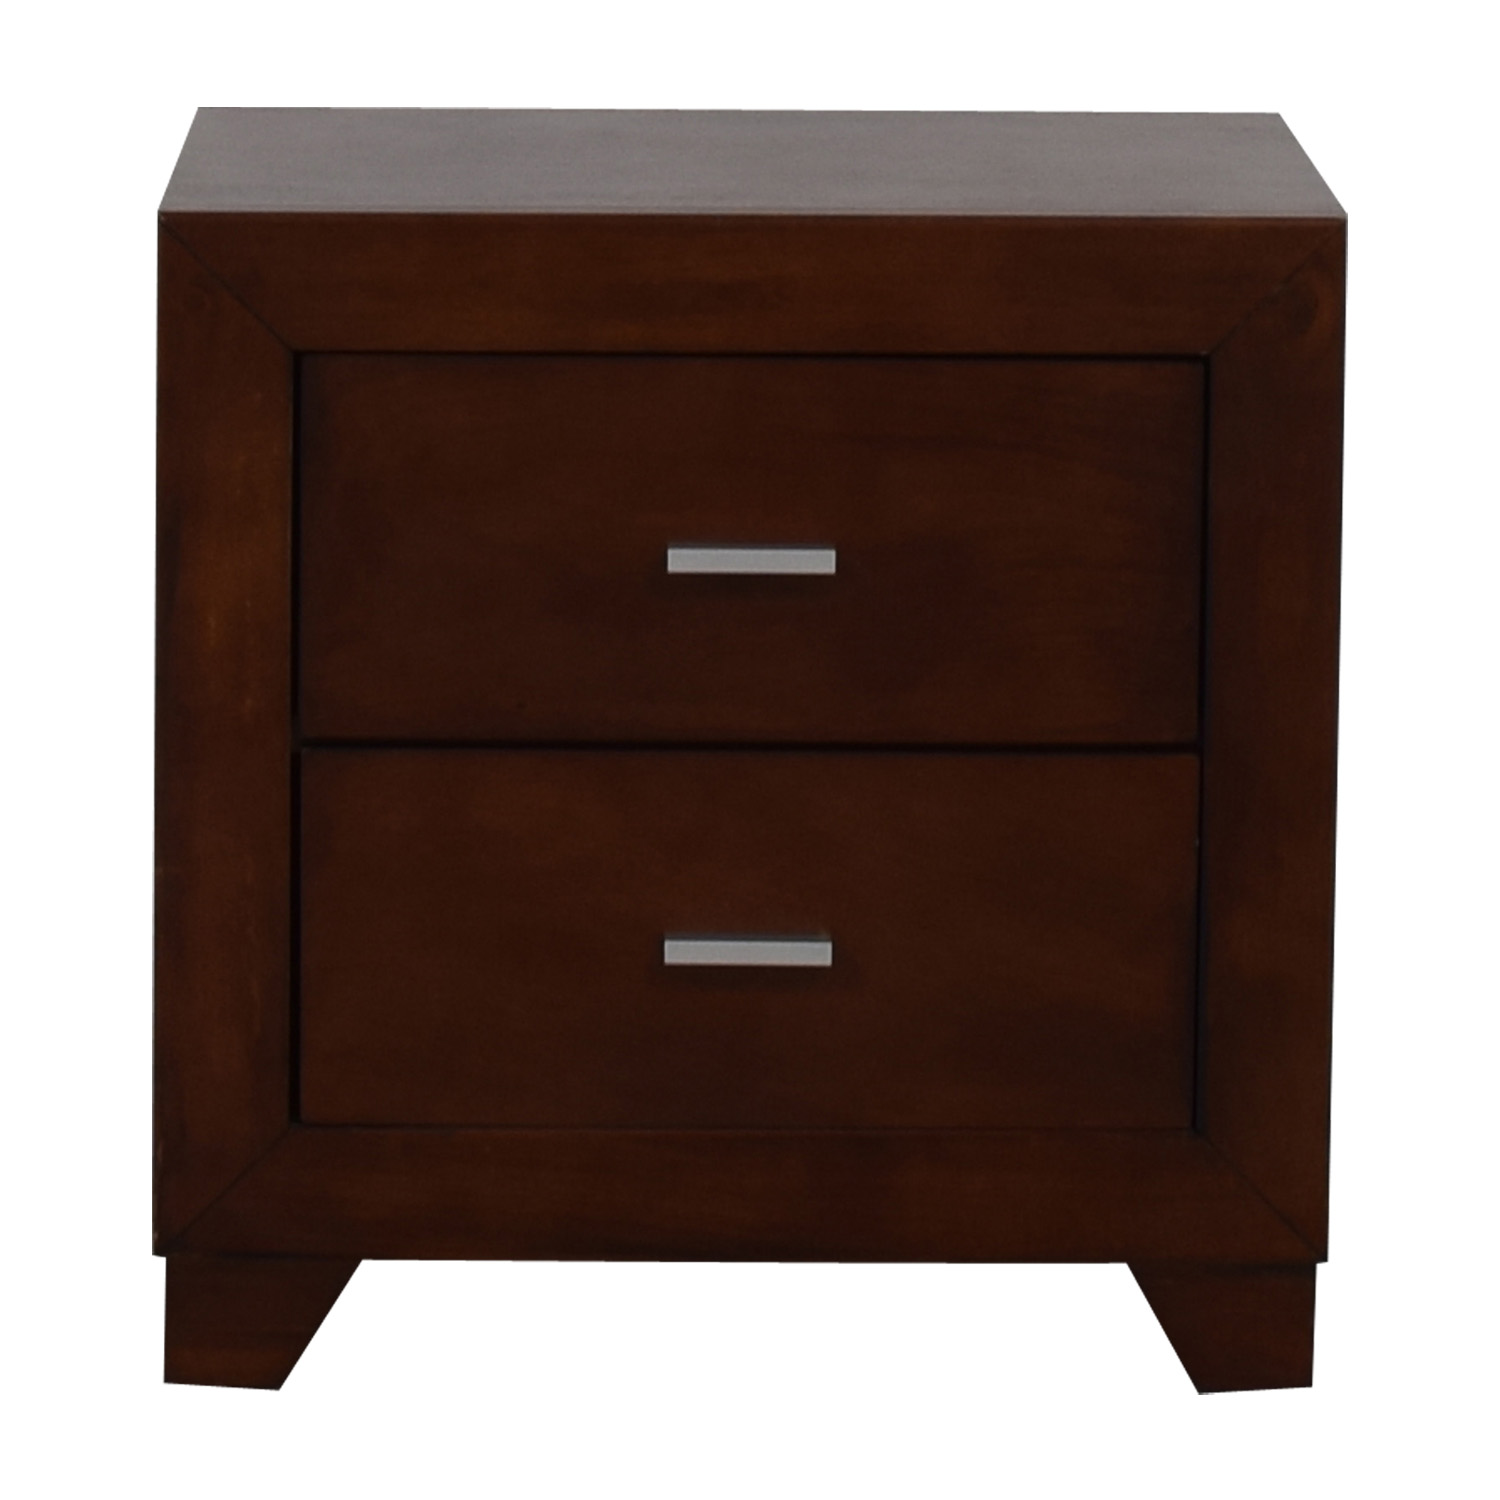 Coaster Fine Furniture Tiffany Two-Drawer Wood End Table Coaster Fine Furniture